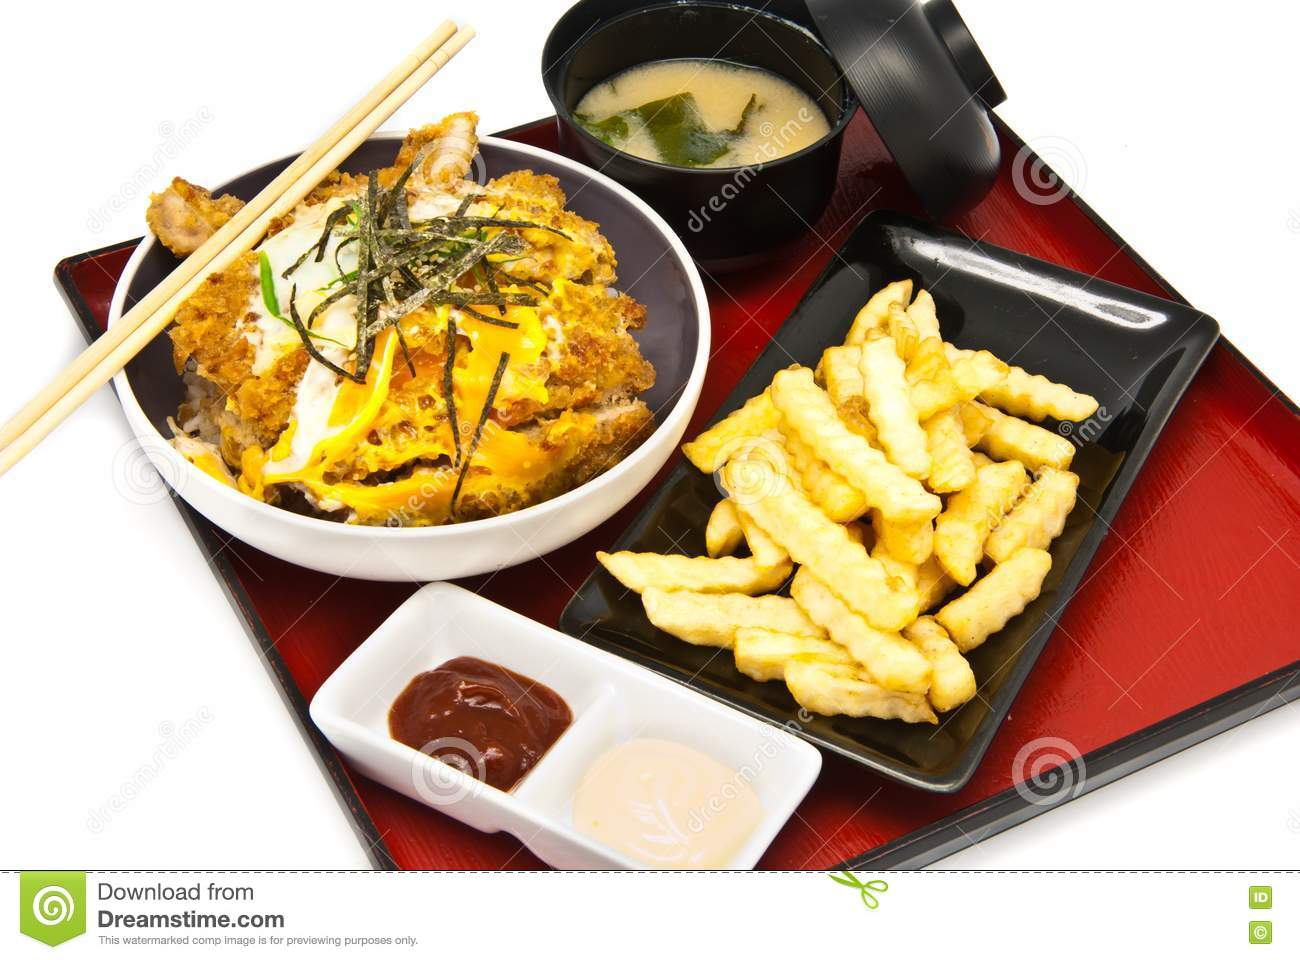 Bento, Japanese Food Style Royalty Free Stock Photography - Image ...